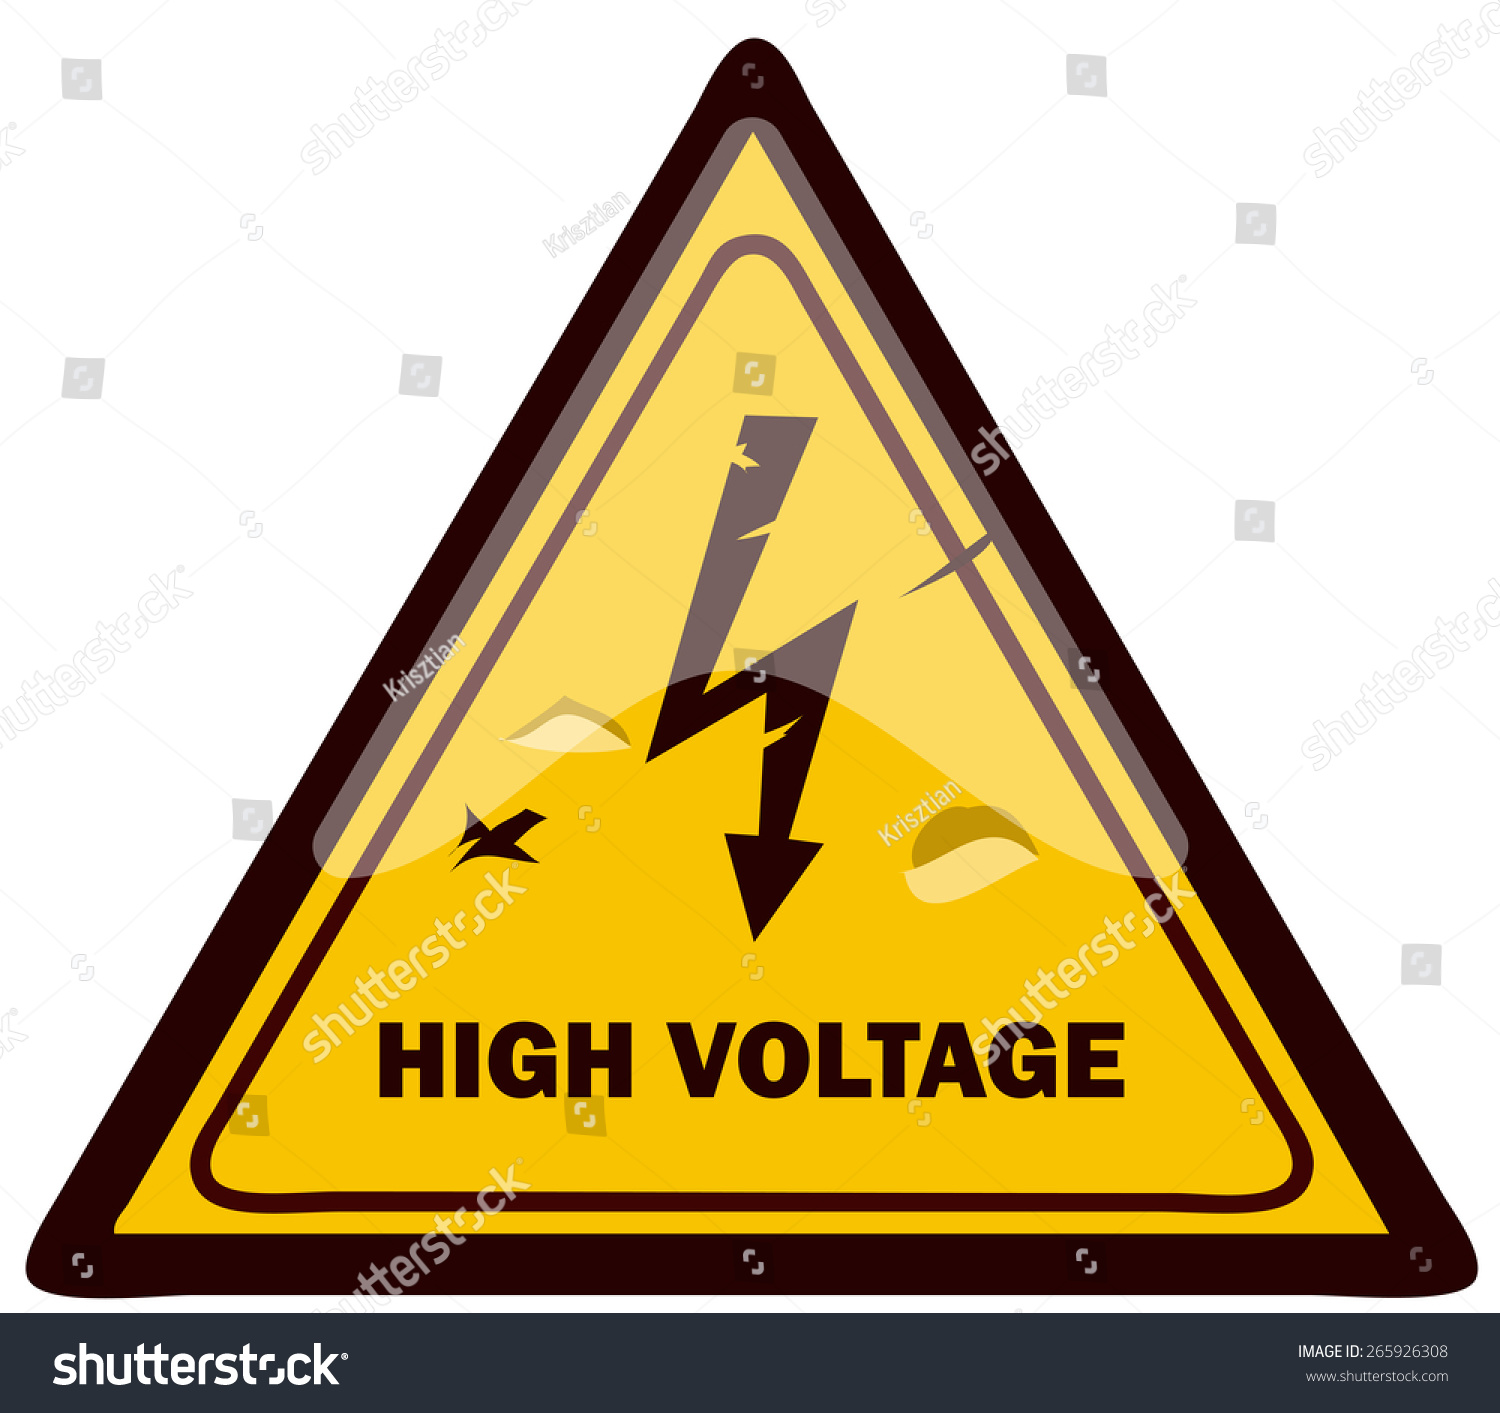 how to get high voltage license